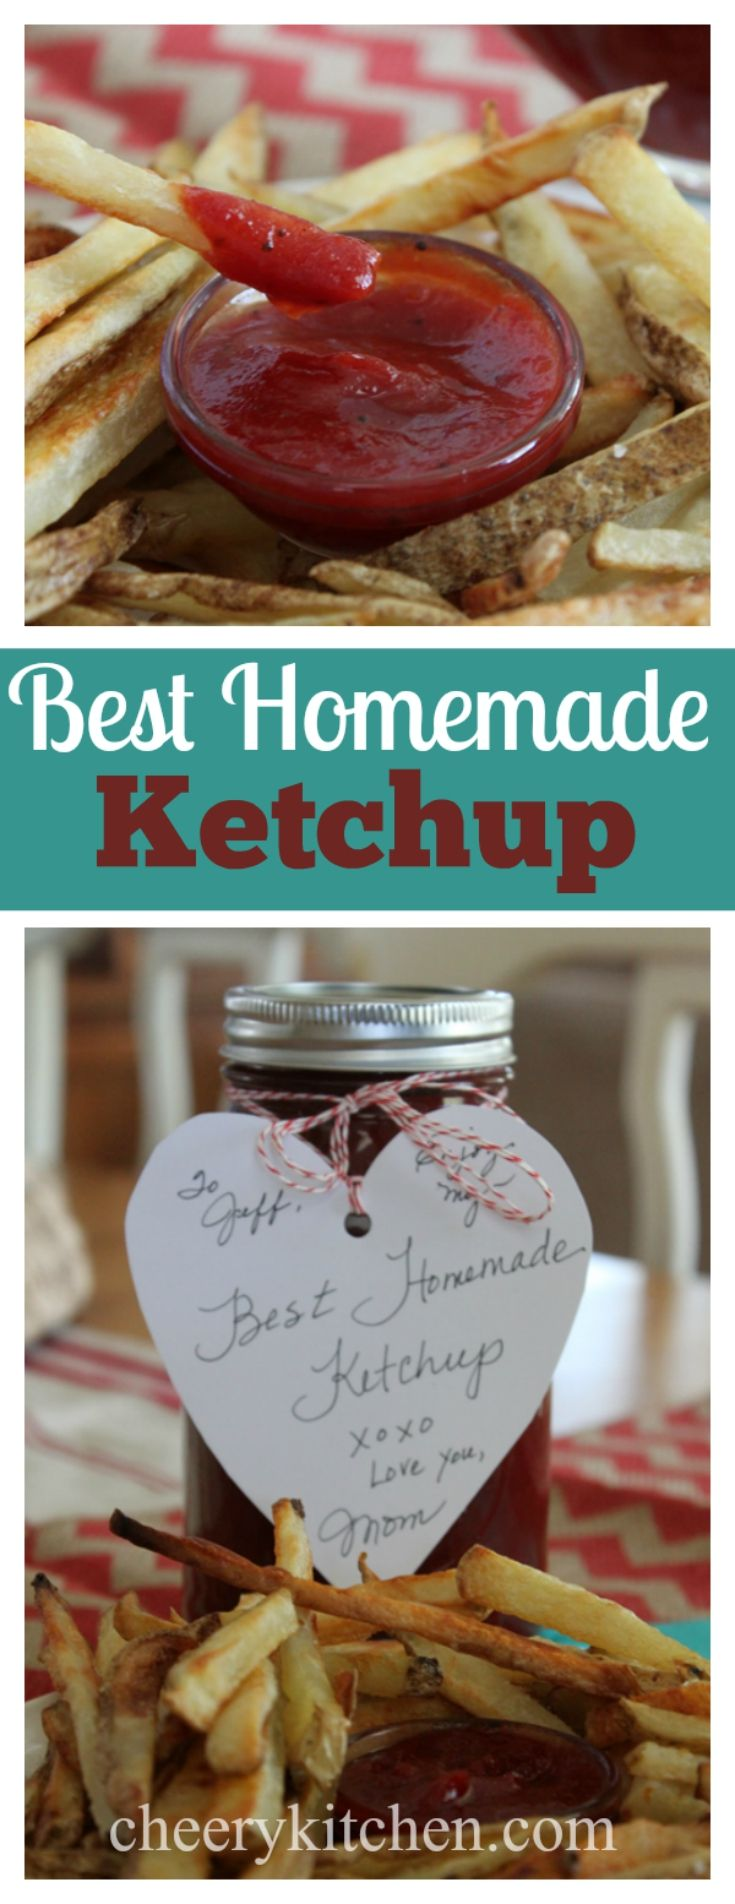 Best Homemade Ketchup